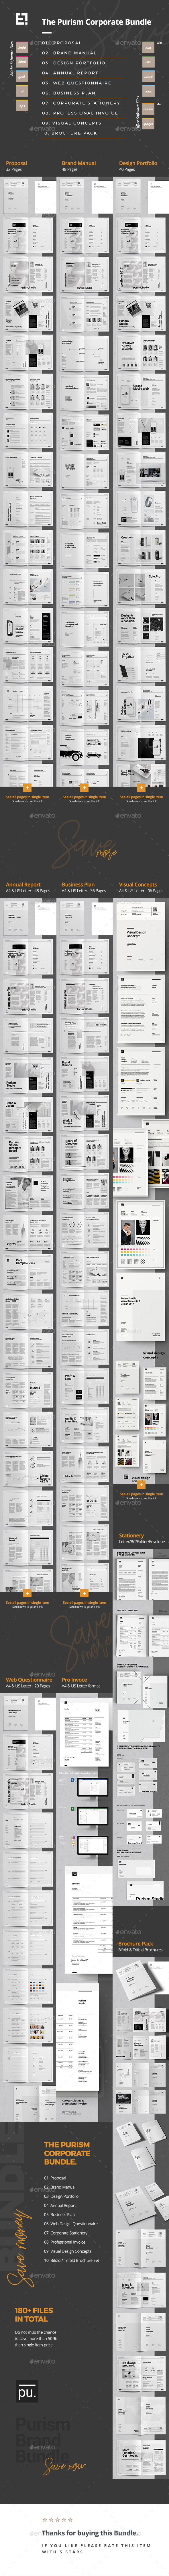 Company Bundle - Corporate Brochures